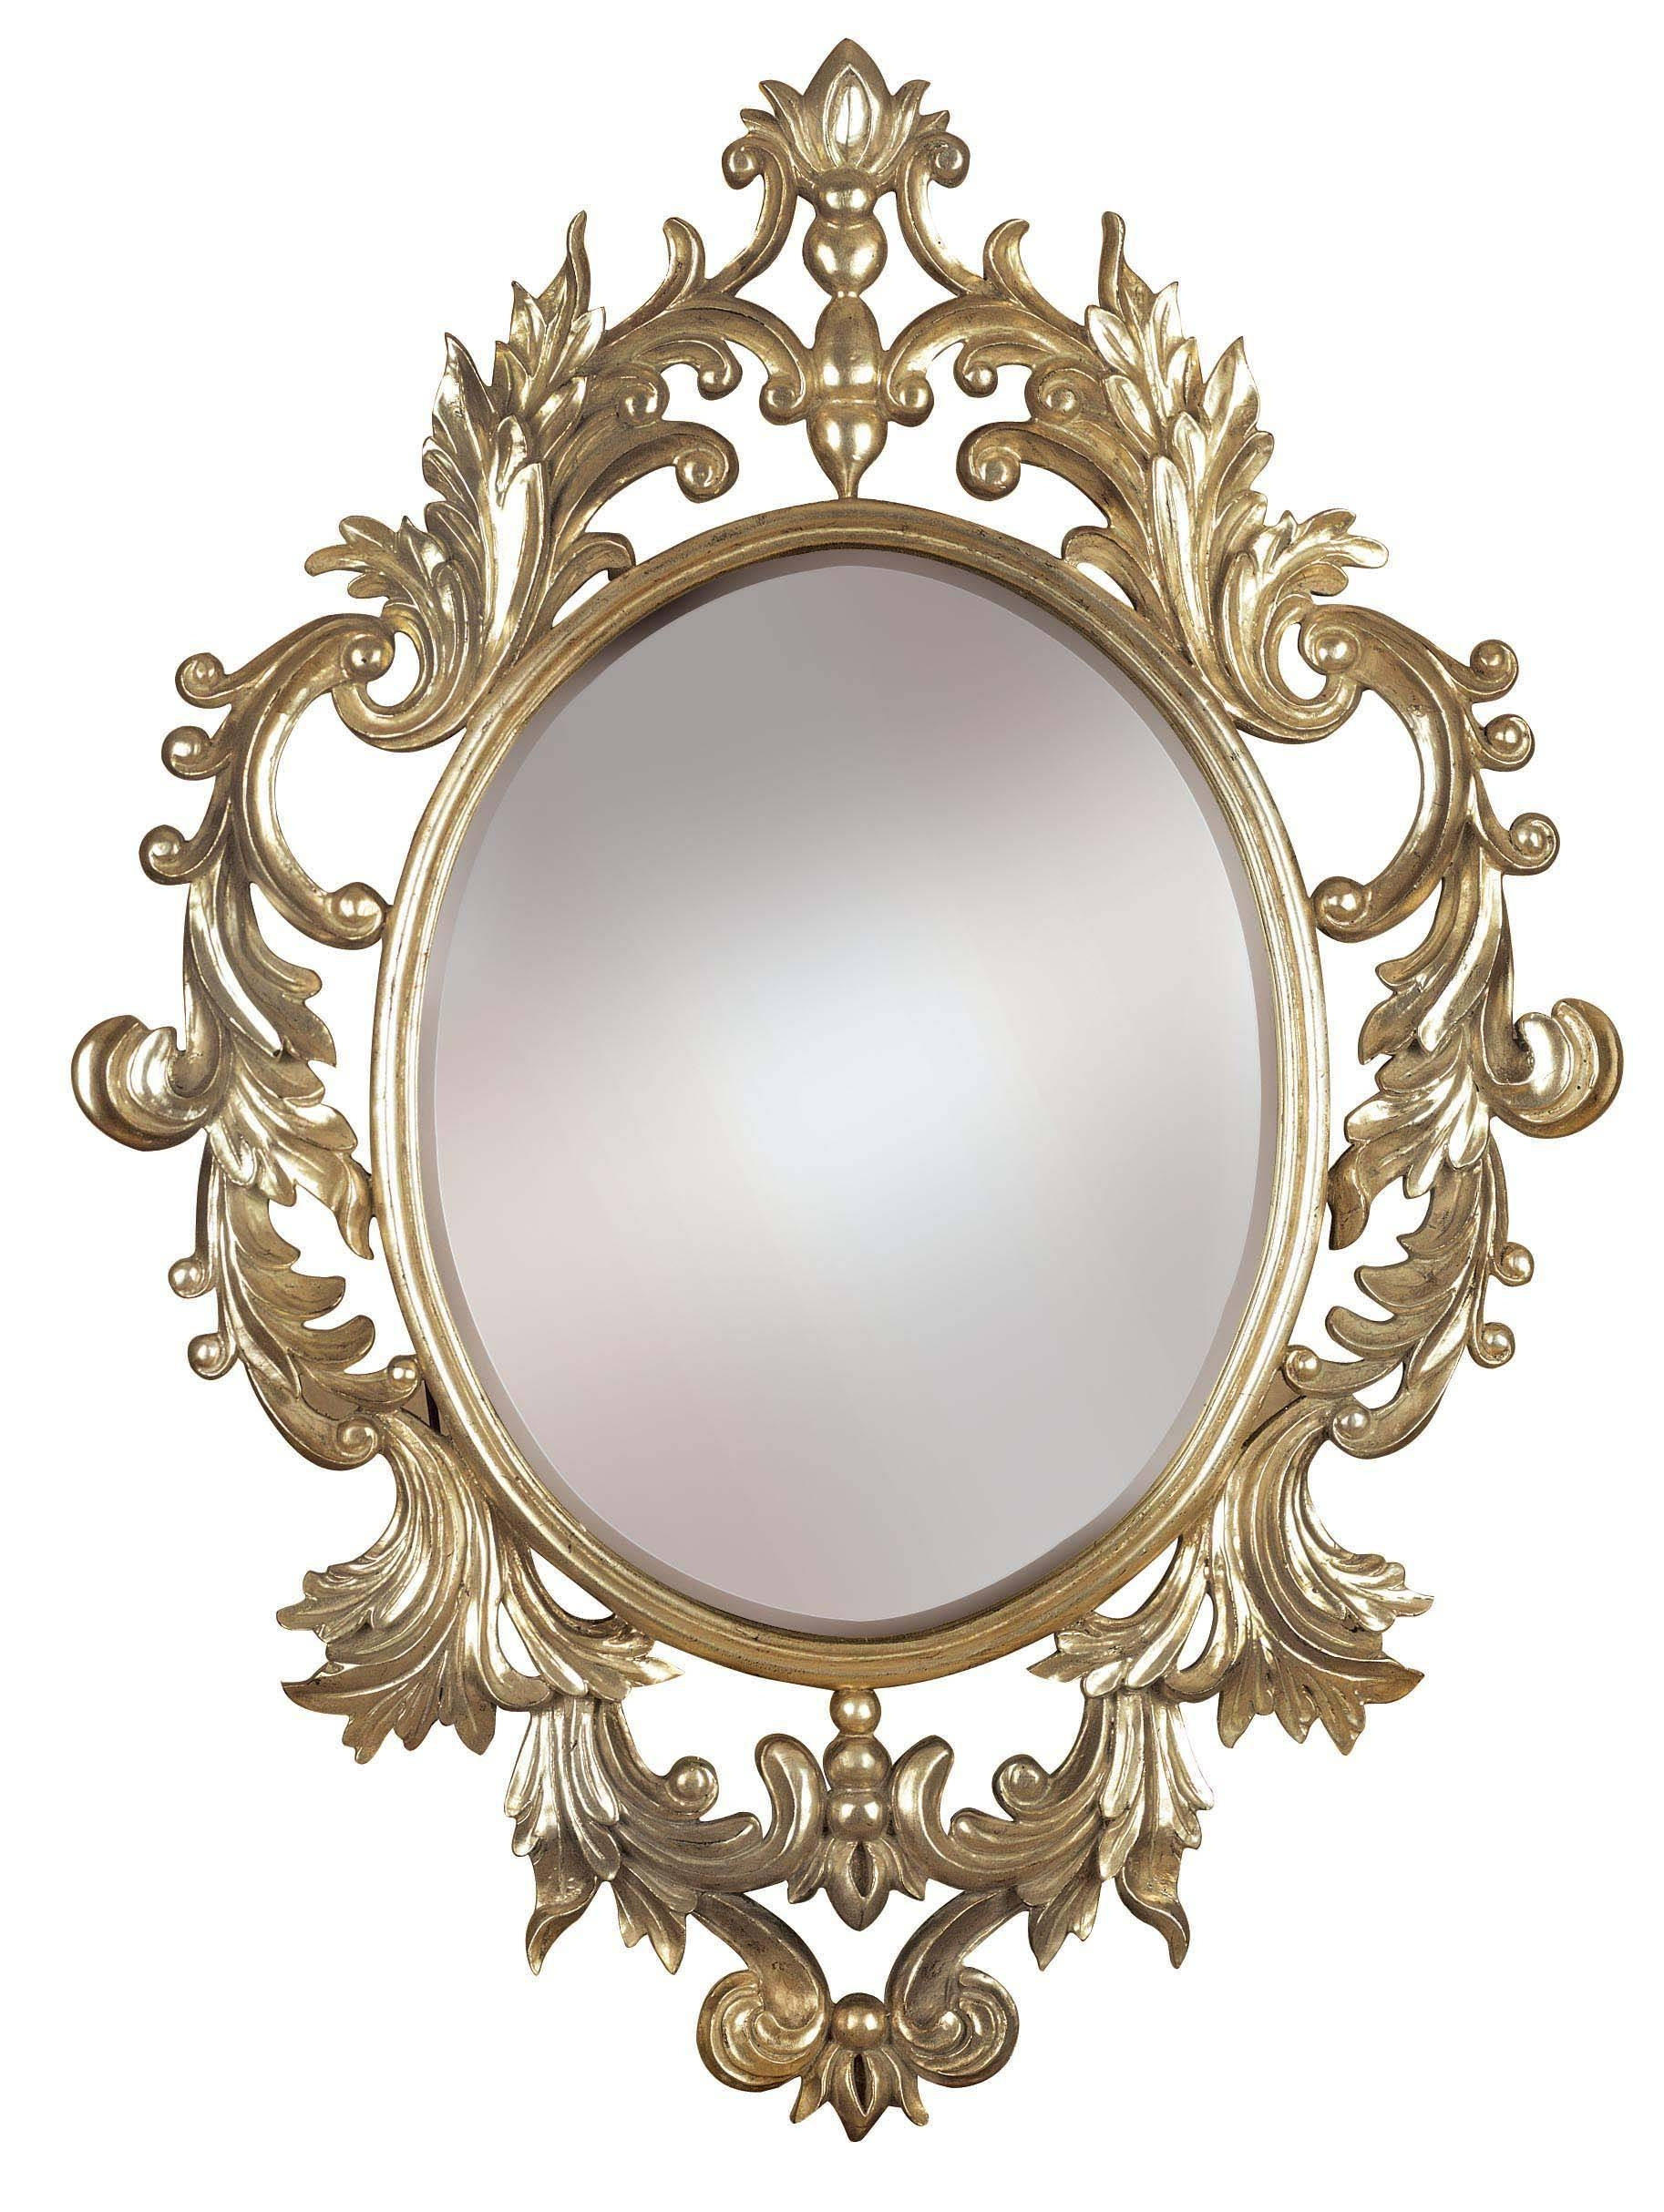 Round Framed Mirror, Oil Rubbed Bronze Framed Wall Mirror Antique within Antique Round Mirrors (Image 20 of 25)